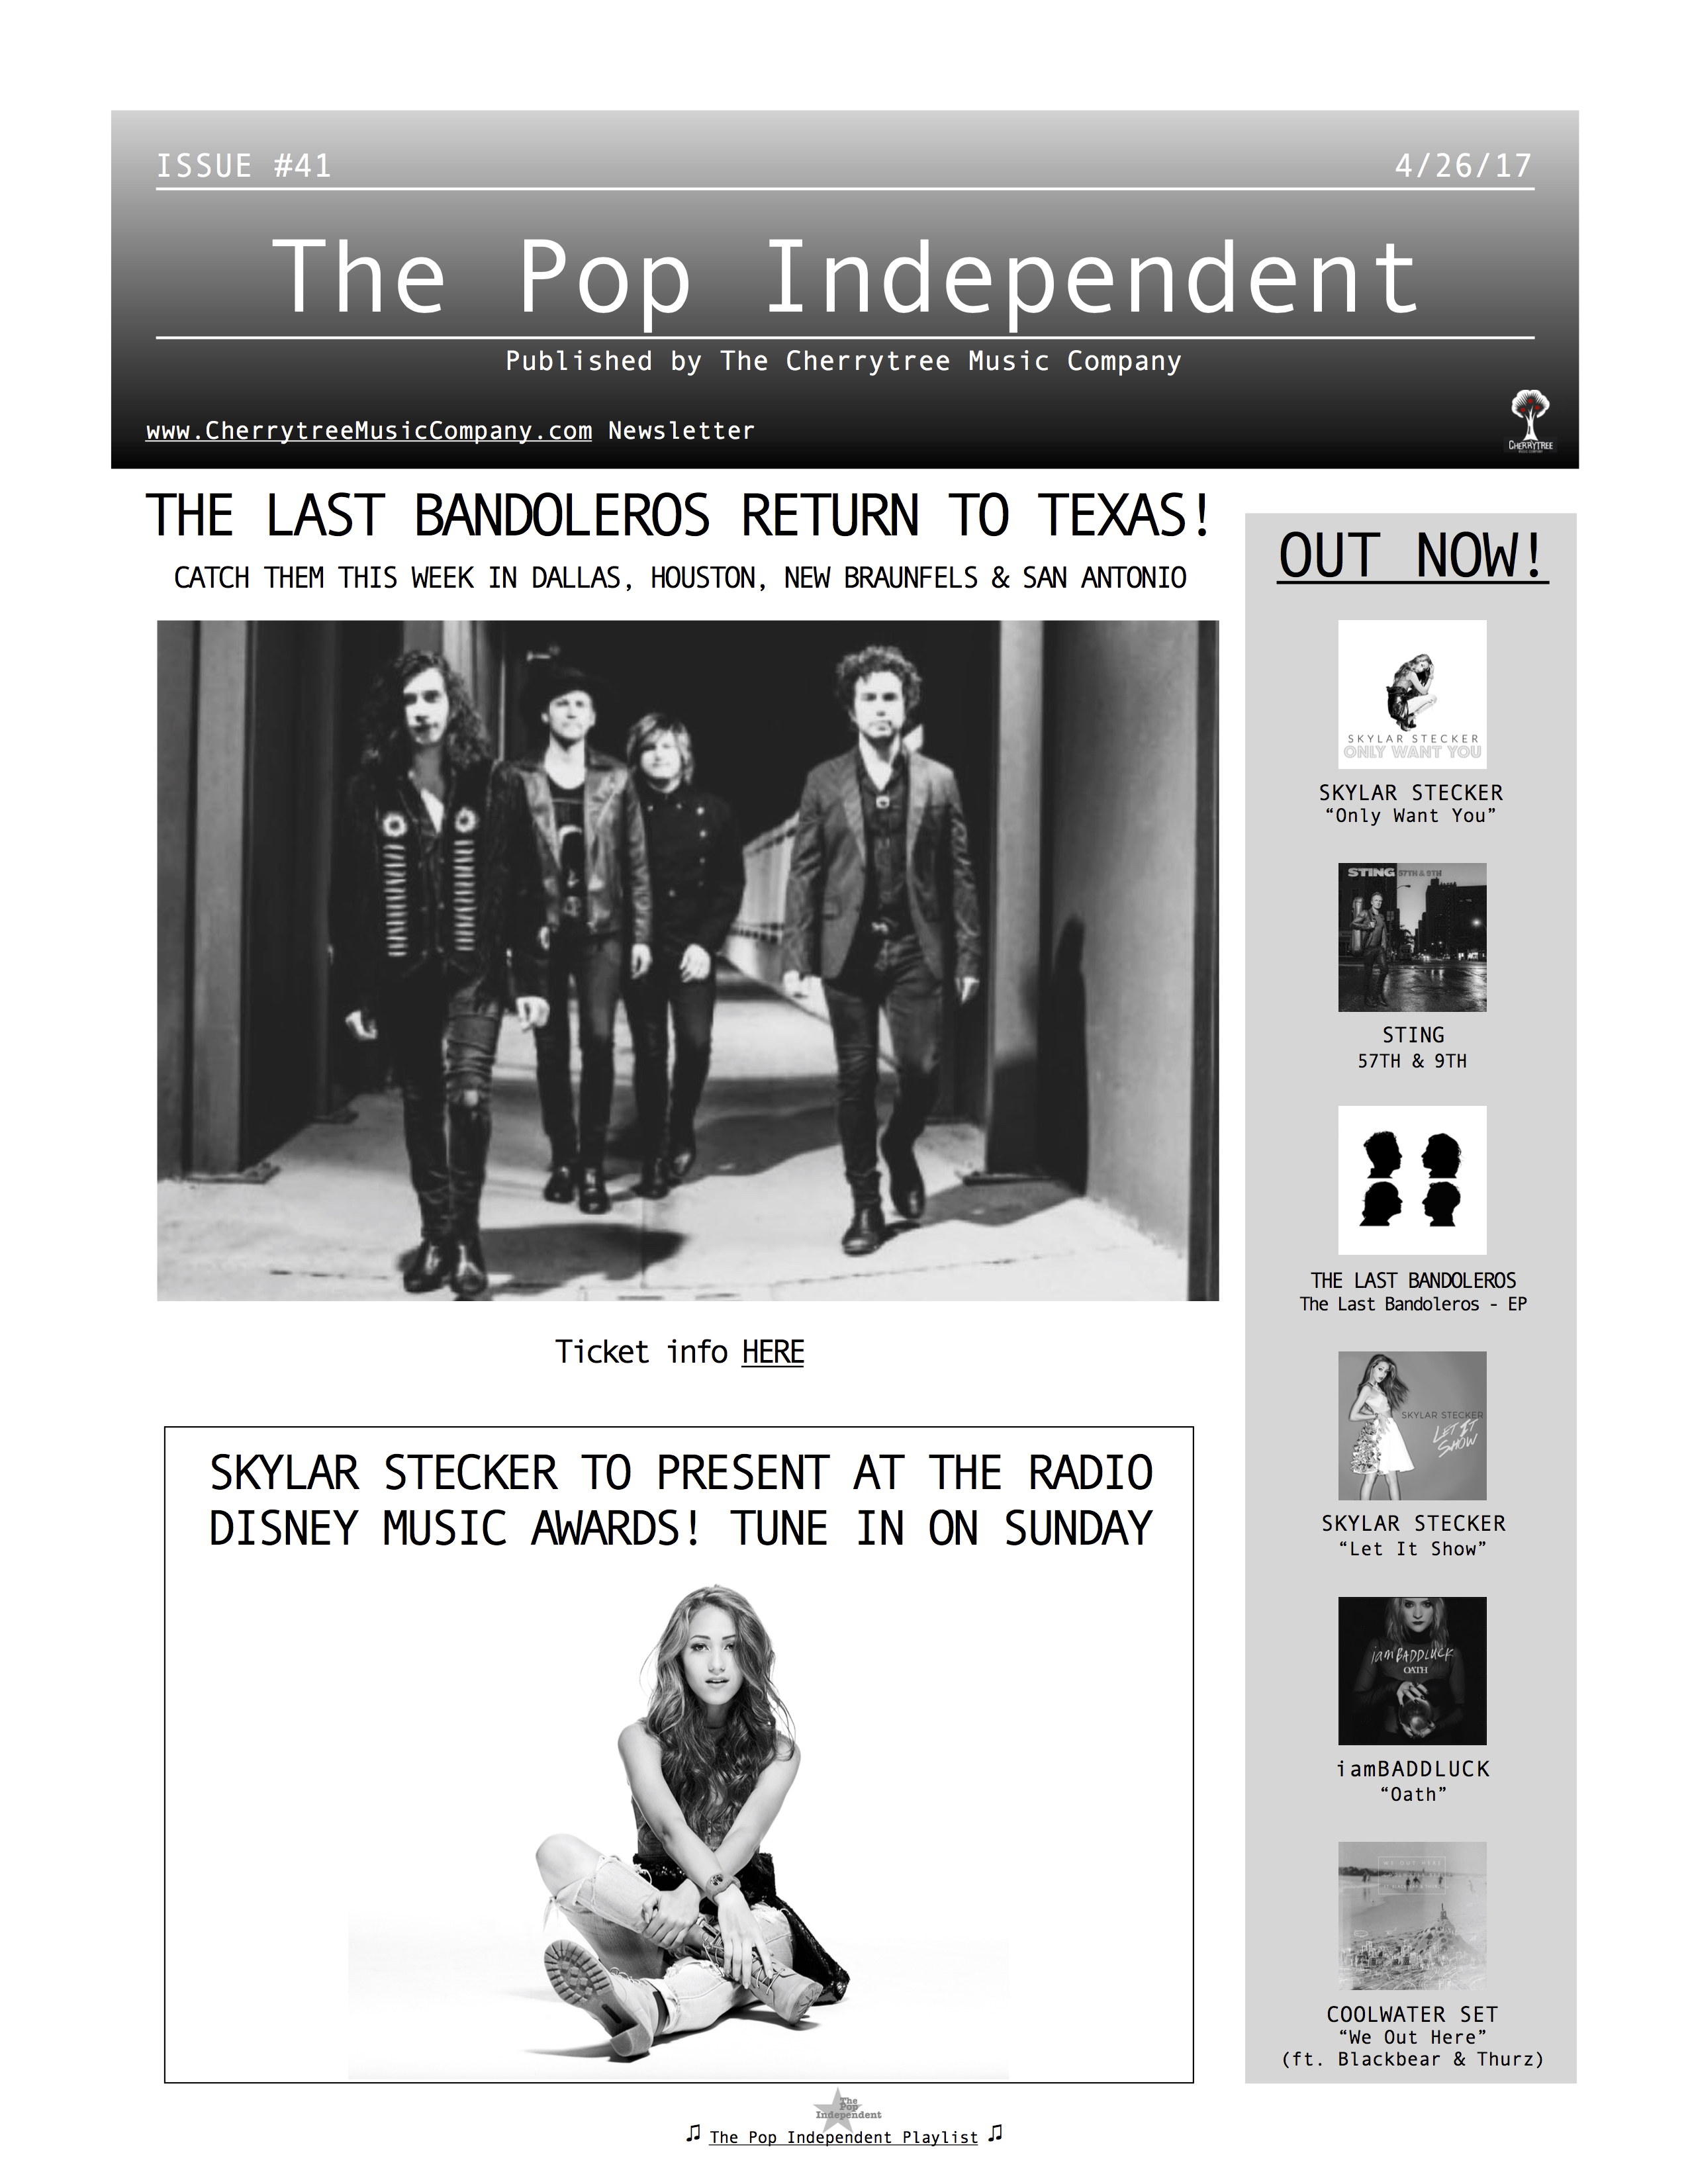 The Pop Independent, issue 41